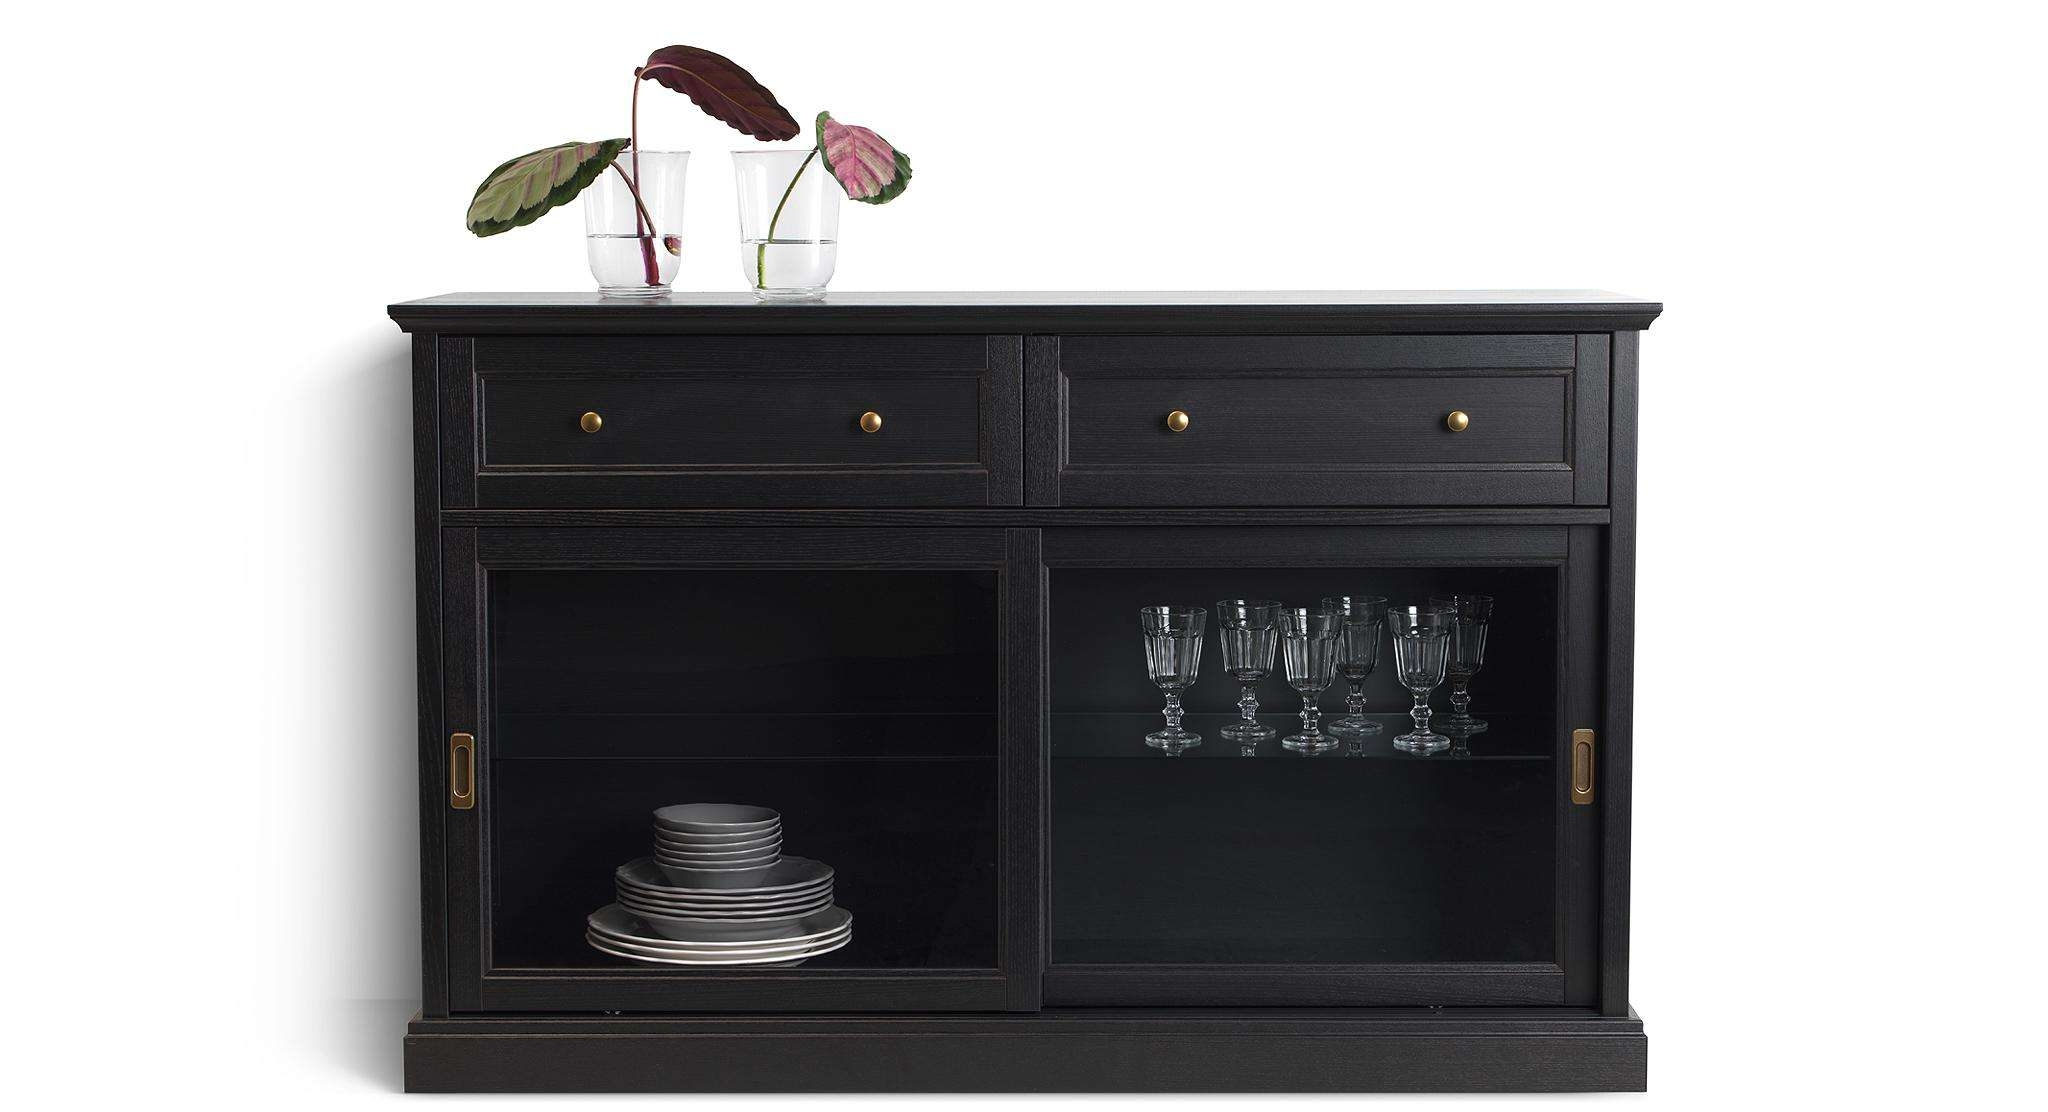 Storage Cabinets & Storage Cupboards | Ikea Ireland Intended For Sideboards With Glass Doors And Drawers (View 19 of 20)